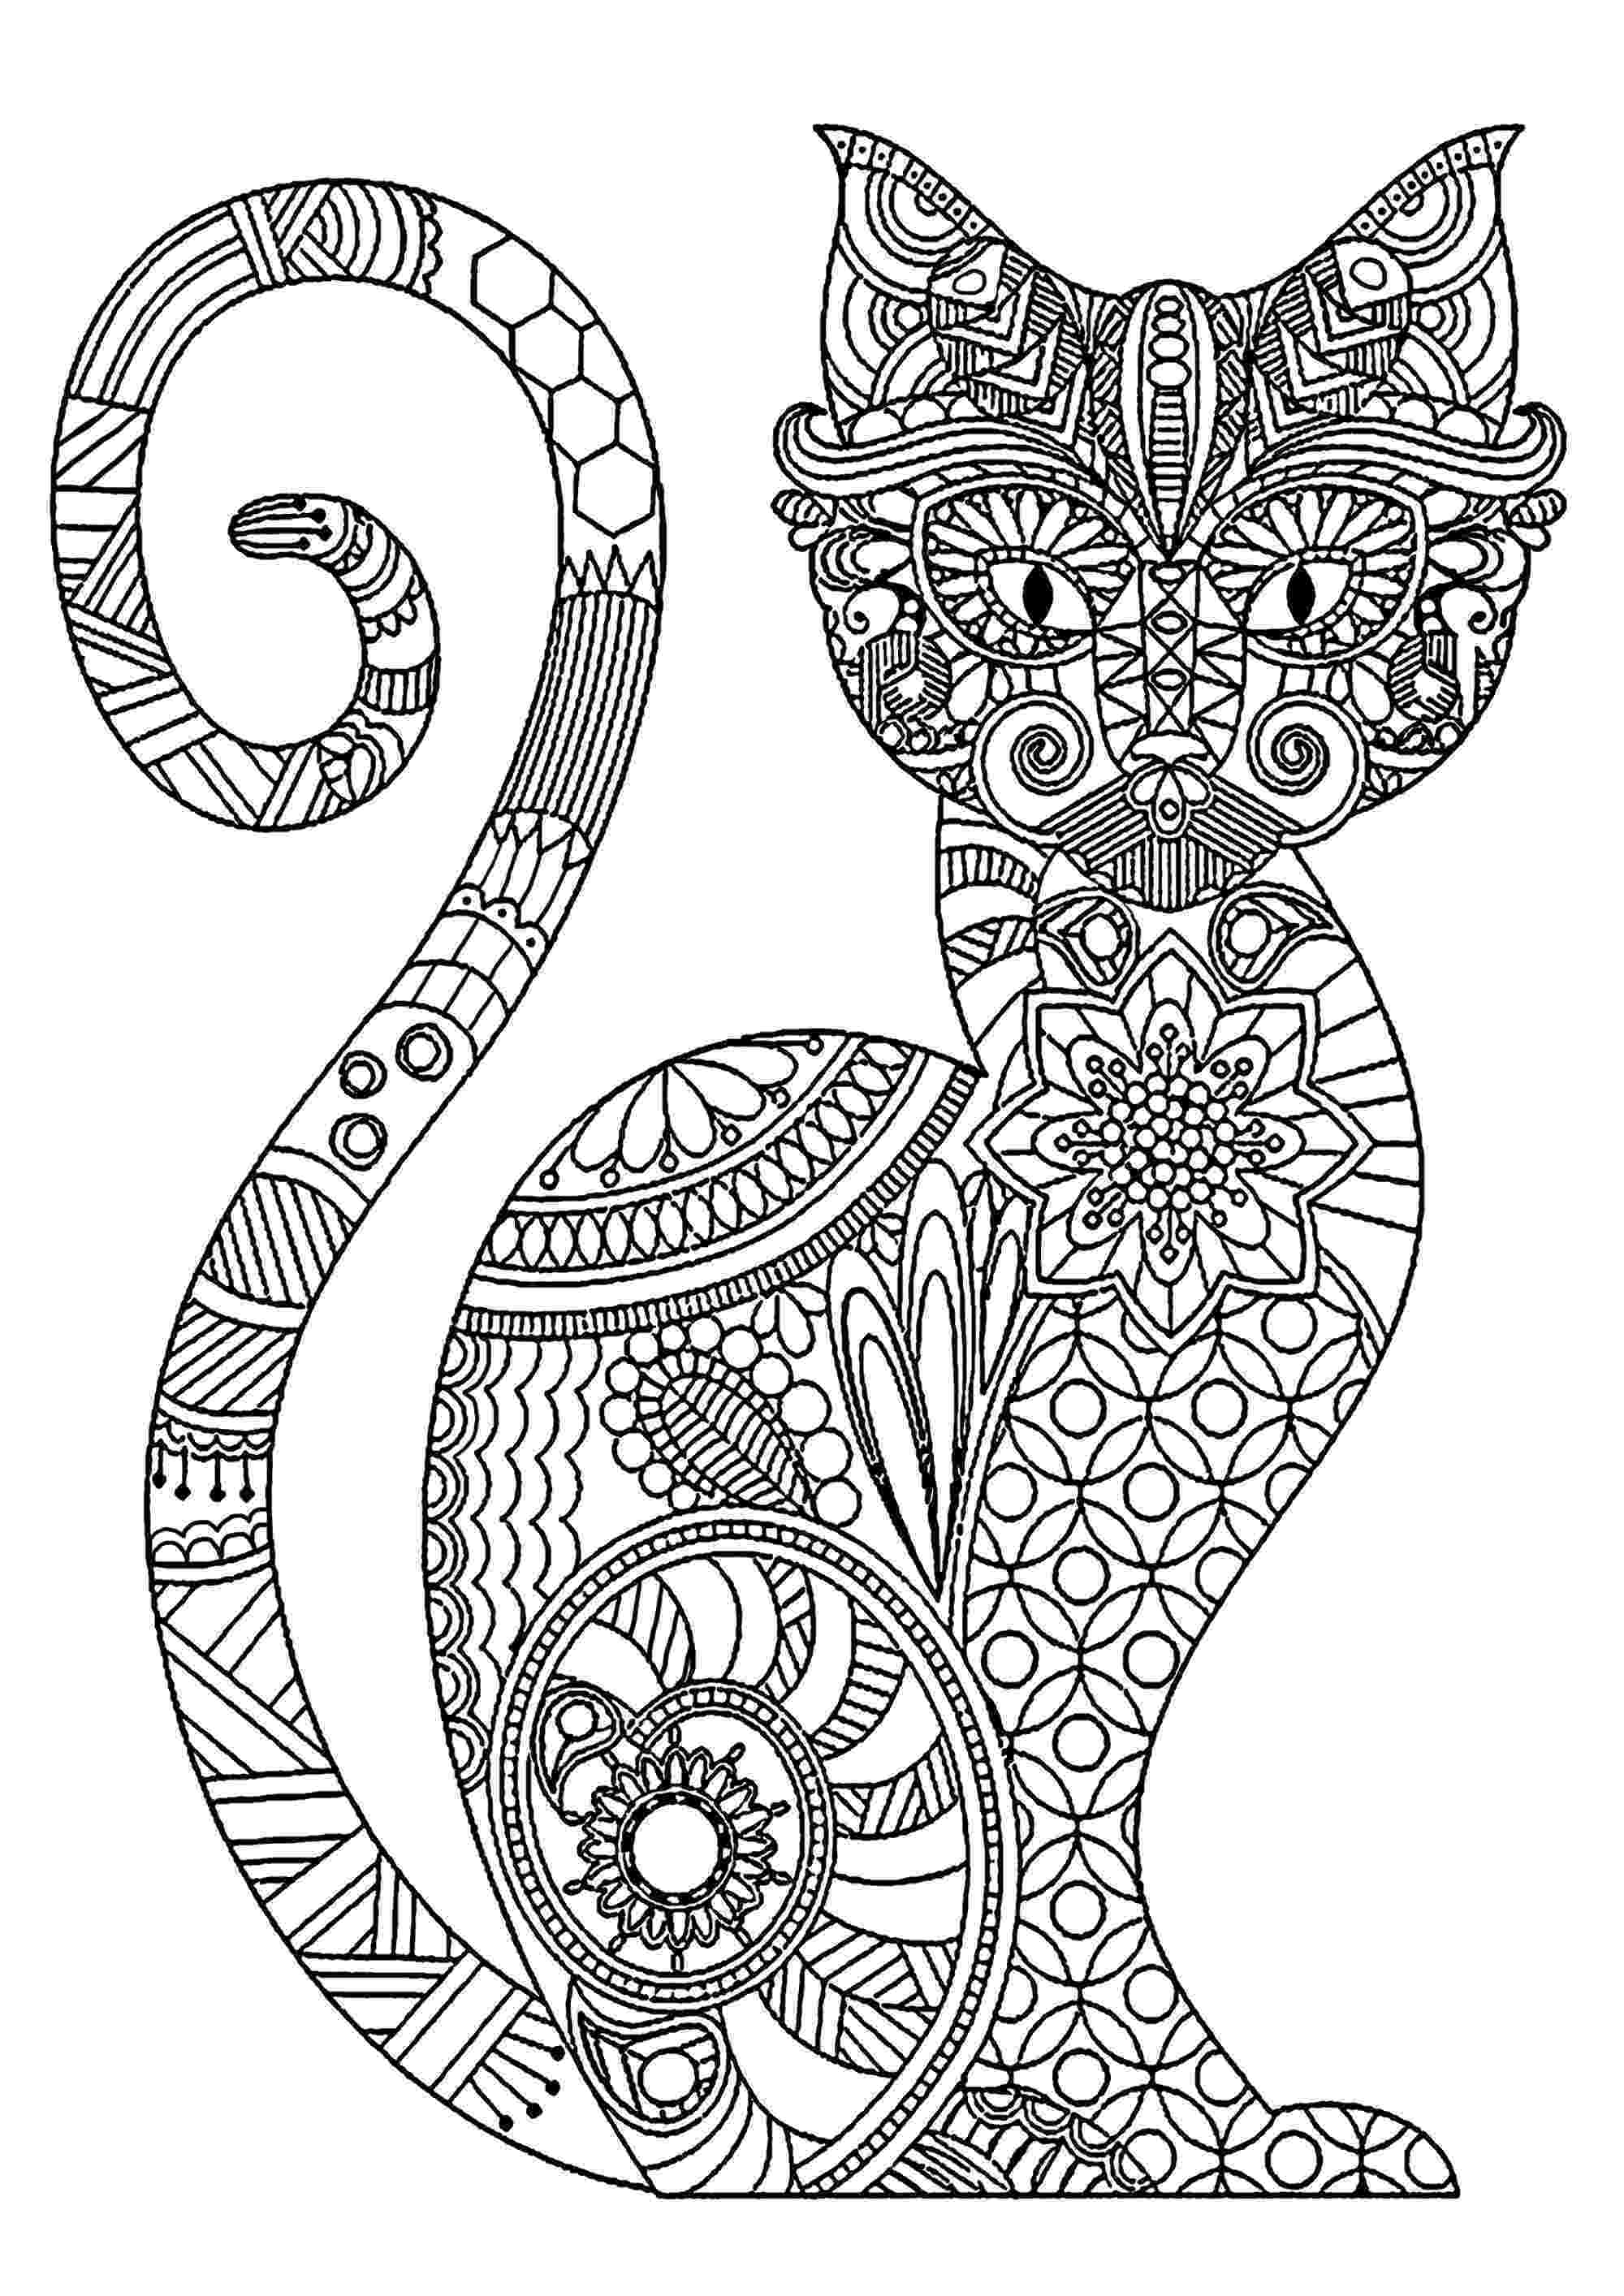 cat coloring pages to print cats to color for kids cats kids coloring pages cat print pages to coloring